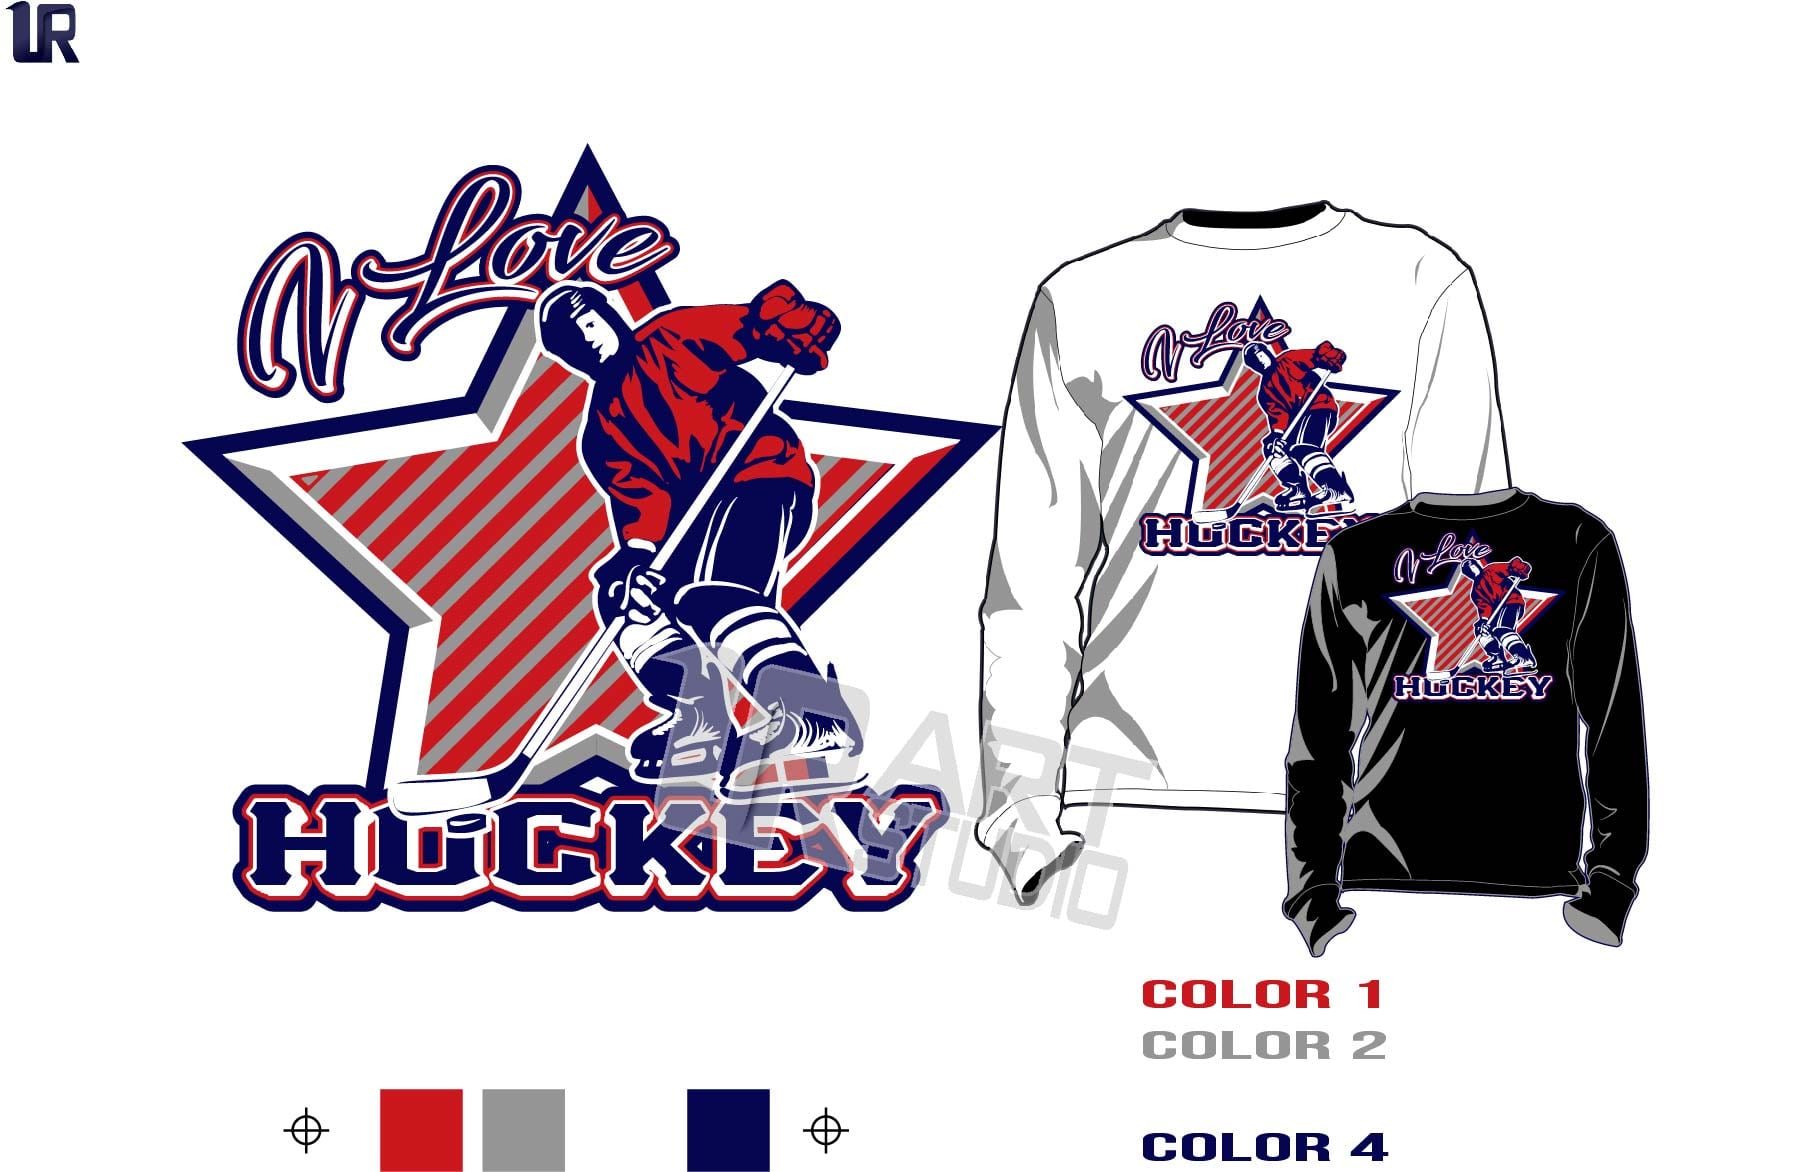 I LOVE HOCKEY FREE tshirt vector design 4 color separated